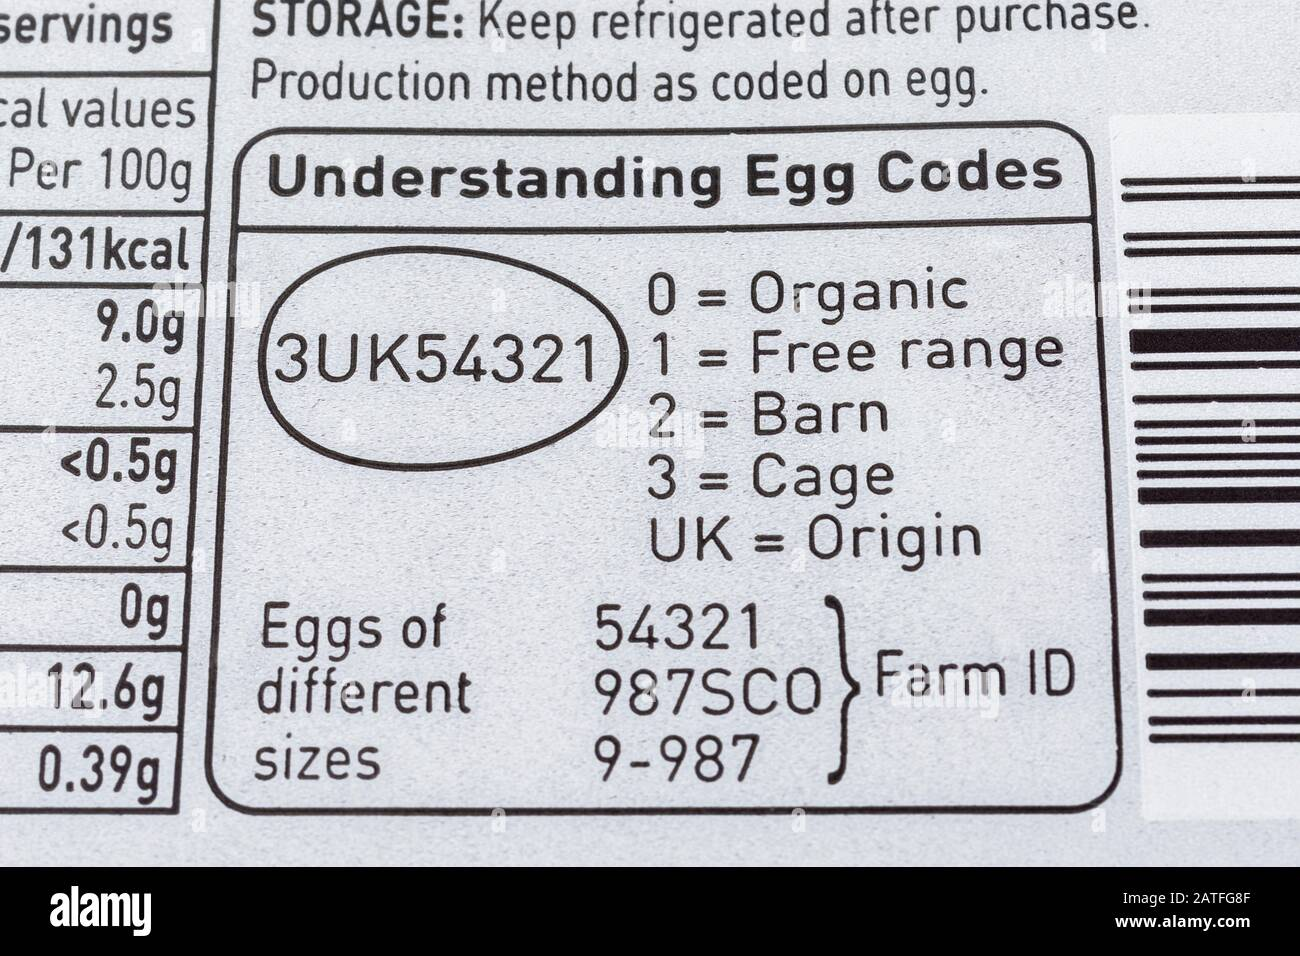 Close up food label on egg box from ASDA explaining UK Egg Codes. Food  packaging, nutrition labels, food labelling, British produce, food Stock  Photo - Alamy